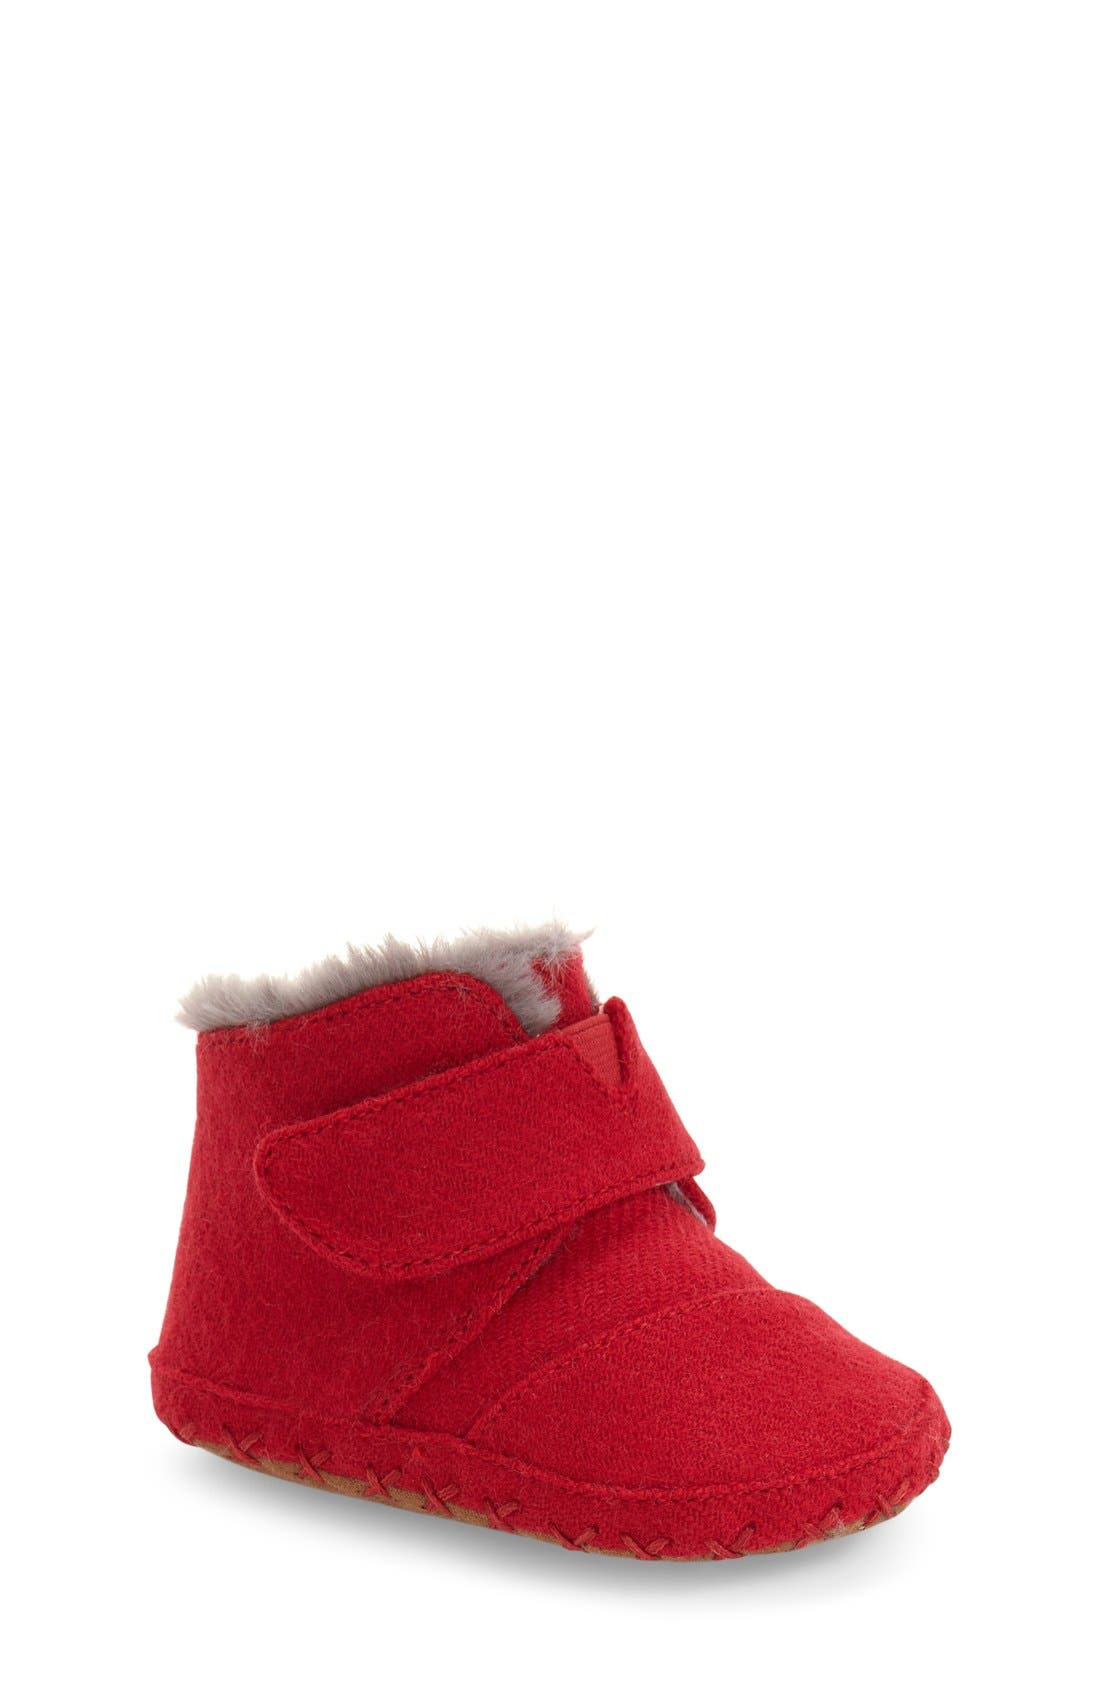 Cuna Layette Crib Shoe,                         Main,                         color, RED